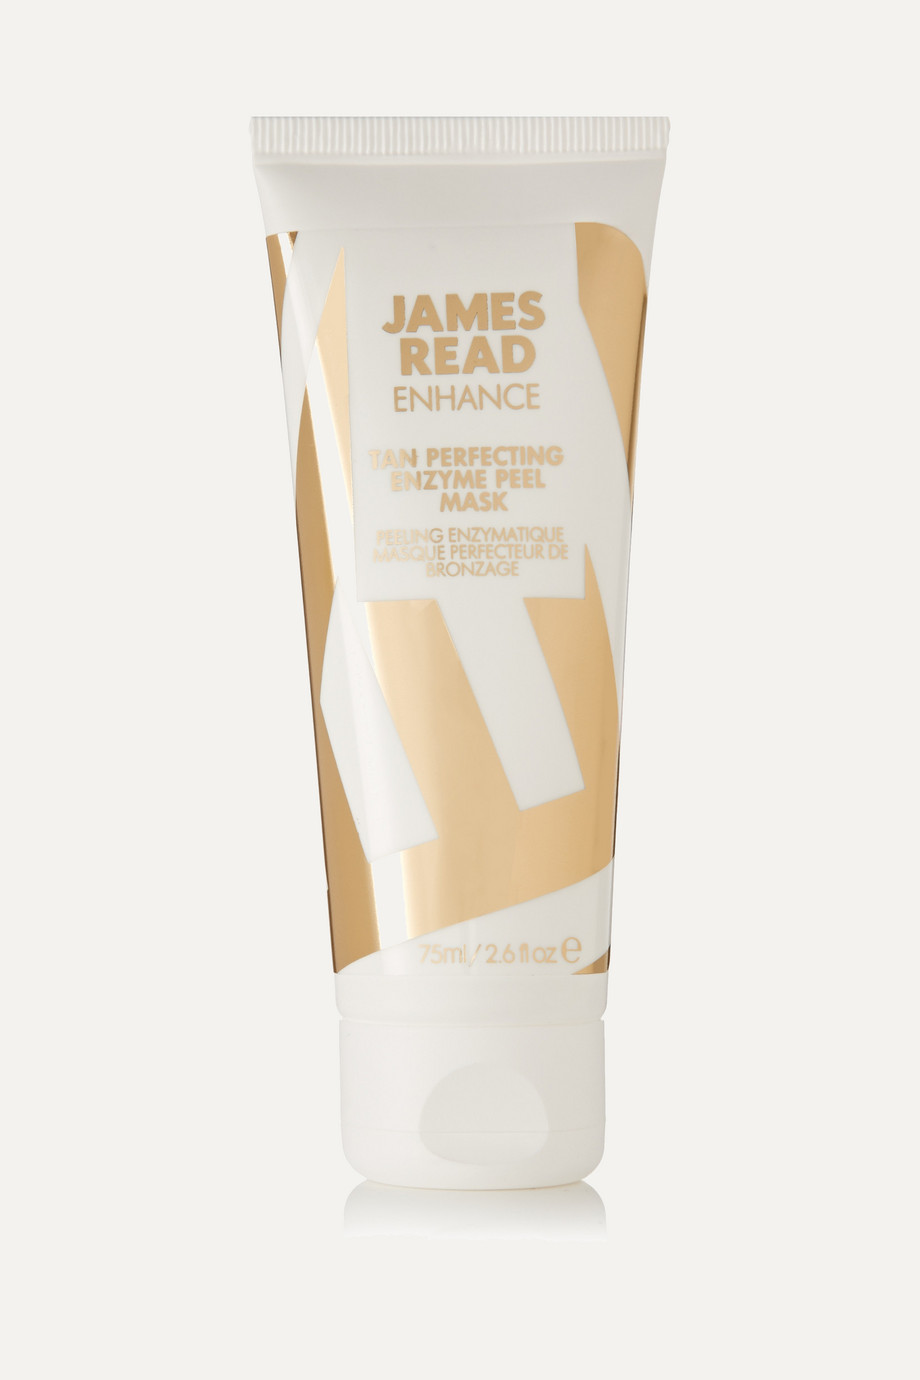 James Read Tan Perfecting Enzyme Peel Mask, 75ml